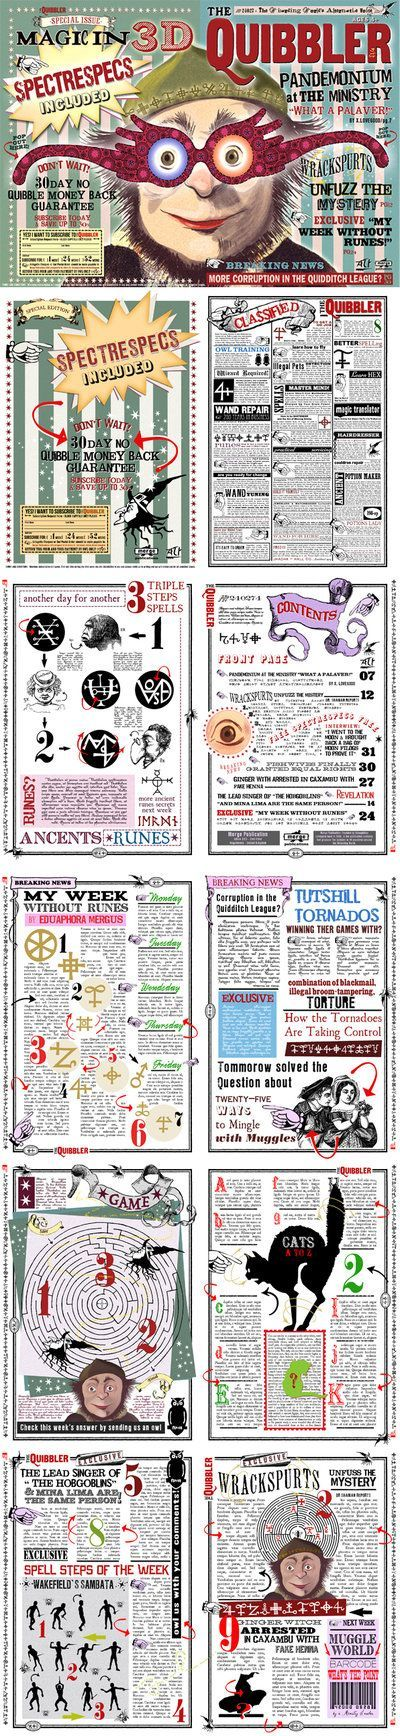 My Complete Page of Quibbler Specs by jhadha on deviantART